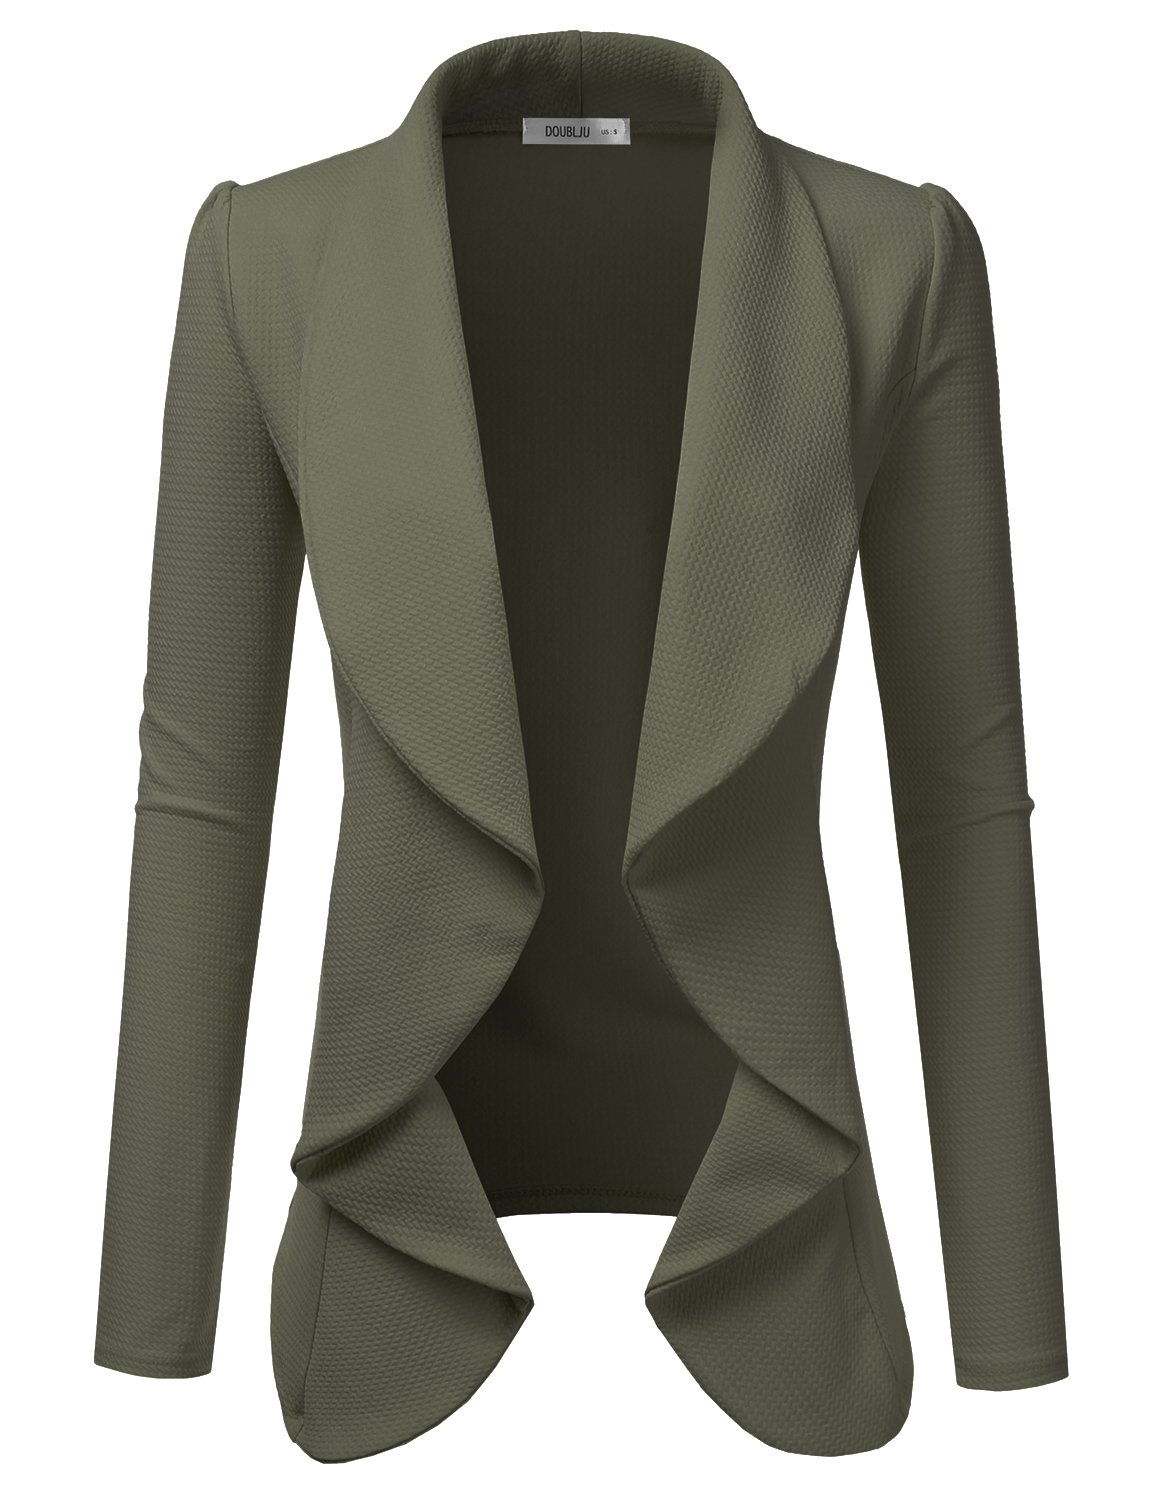 NINEXIS Womens Classic Draped Open Front Blazer Olive XL